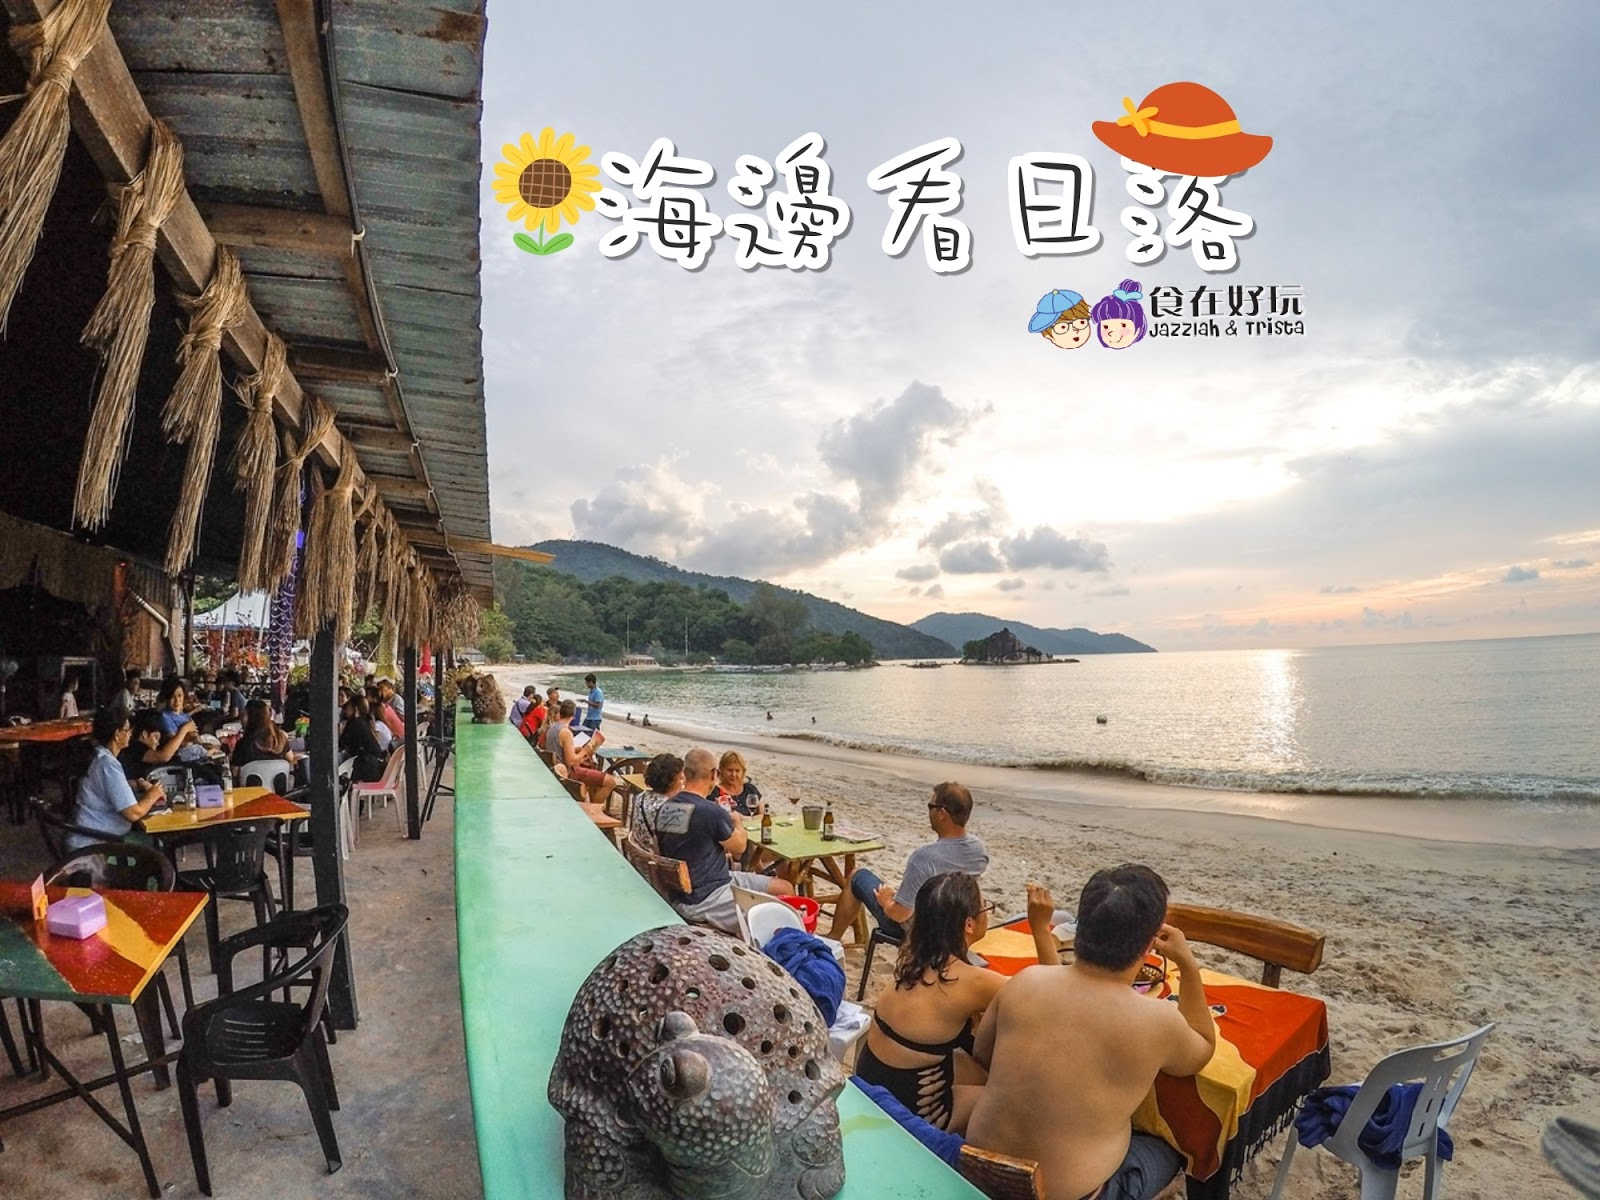 槟城酒吧 Frandy Beach Bar Batu Ferringhi 食在好玩 美食旅游部落